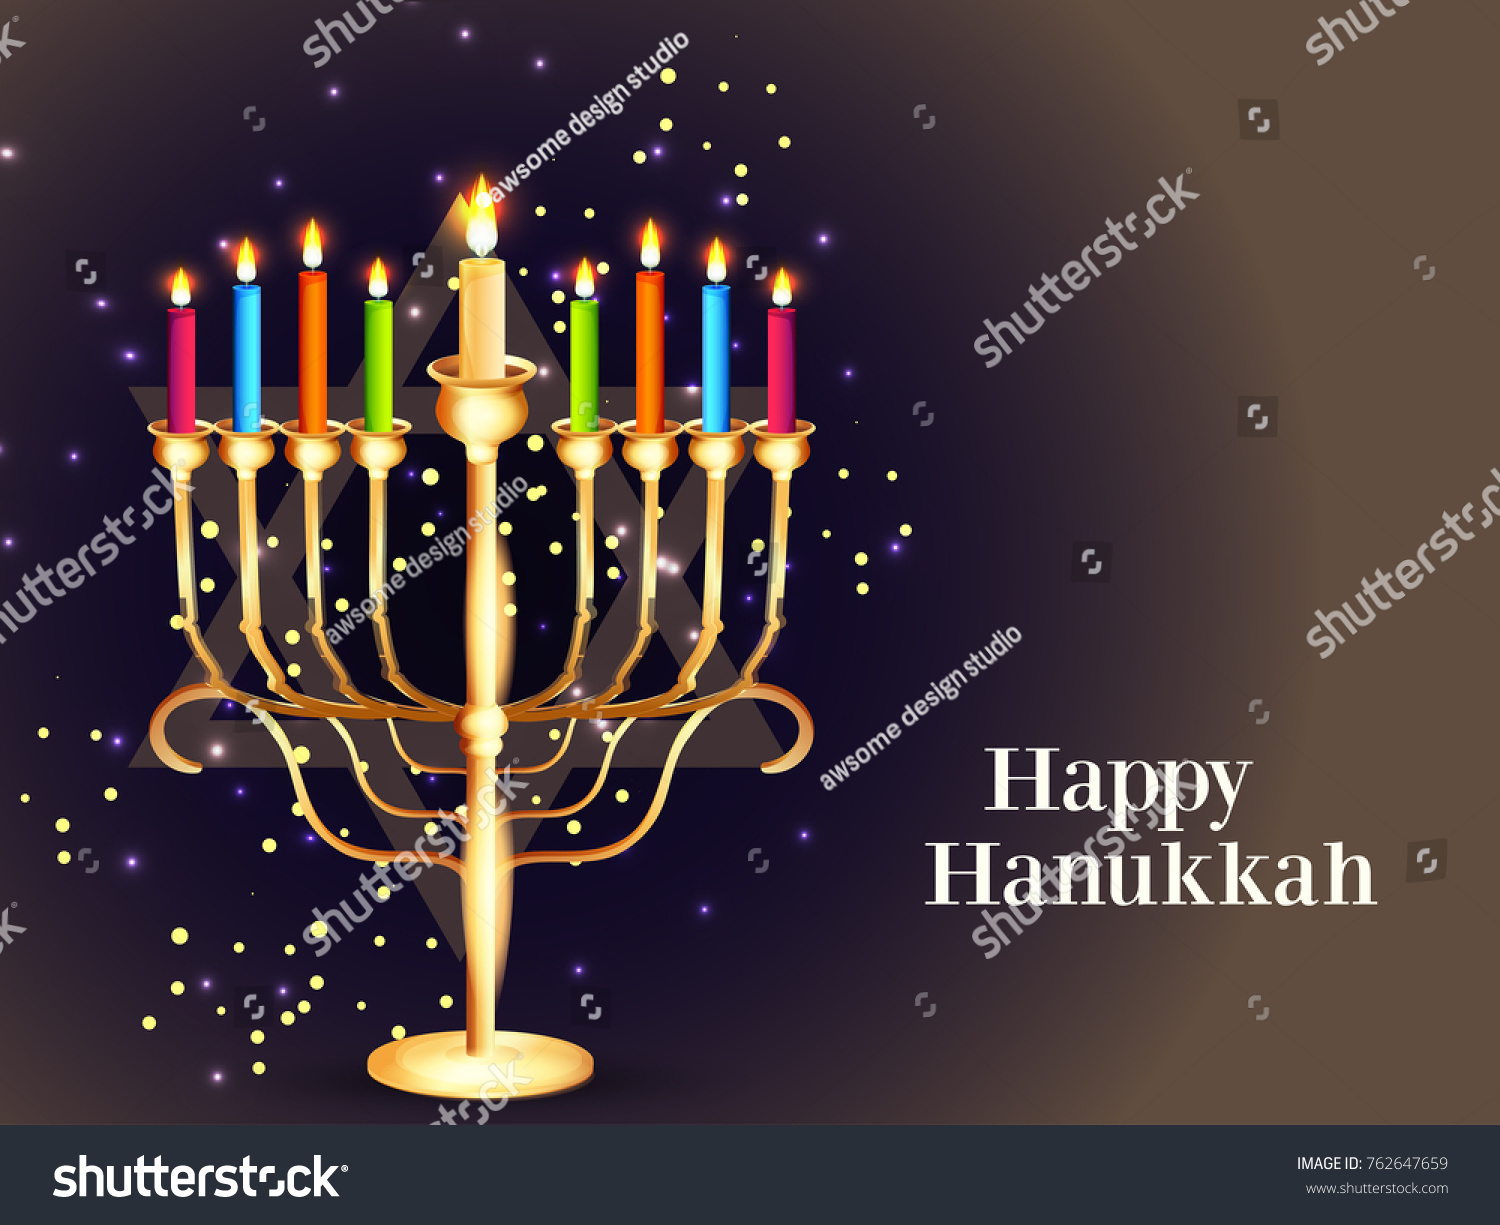 Happy Hanukkah Greeting Card Design Jewish Holiday Stock Vector